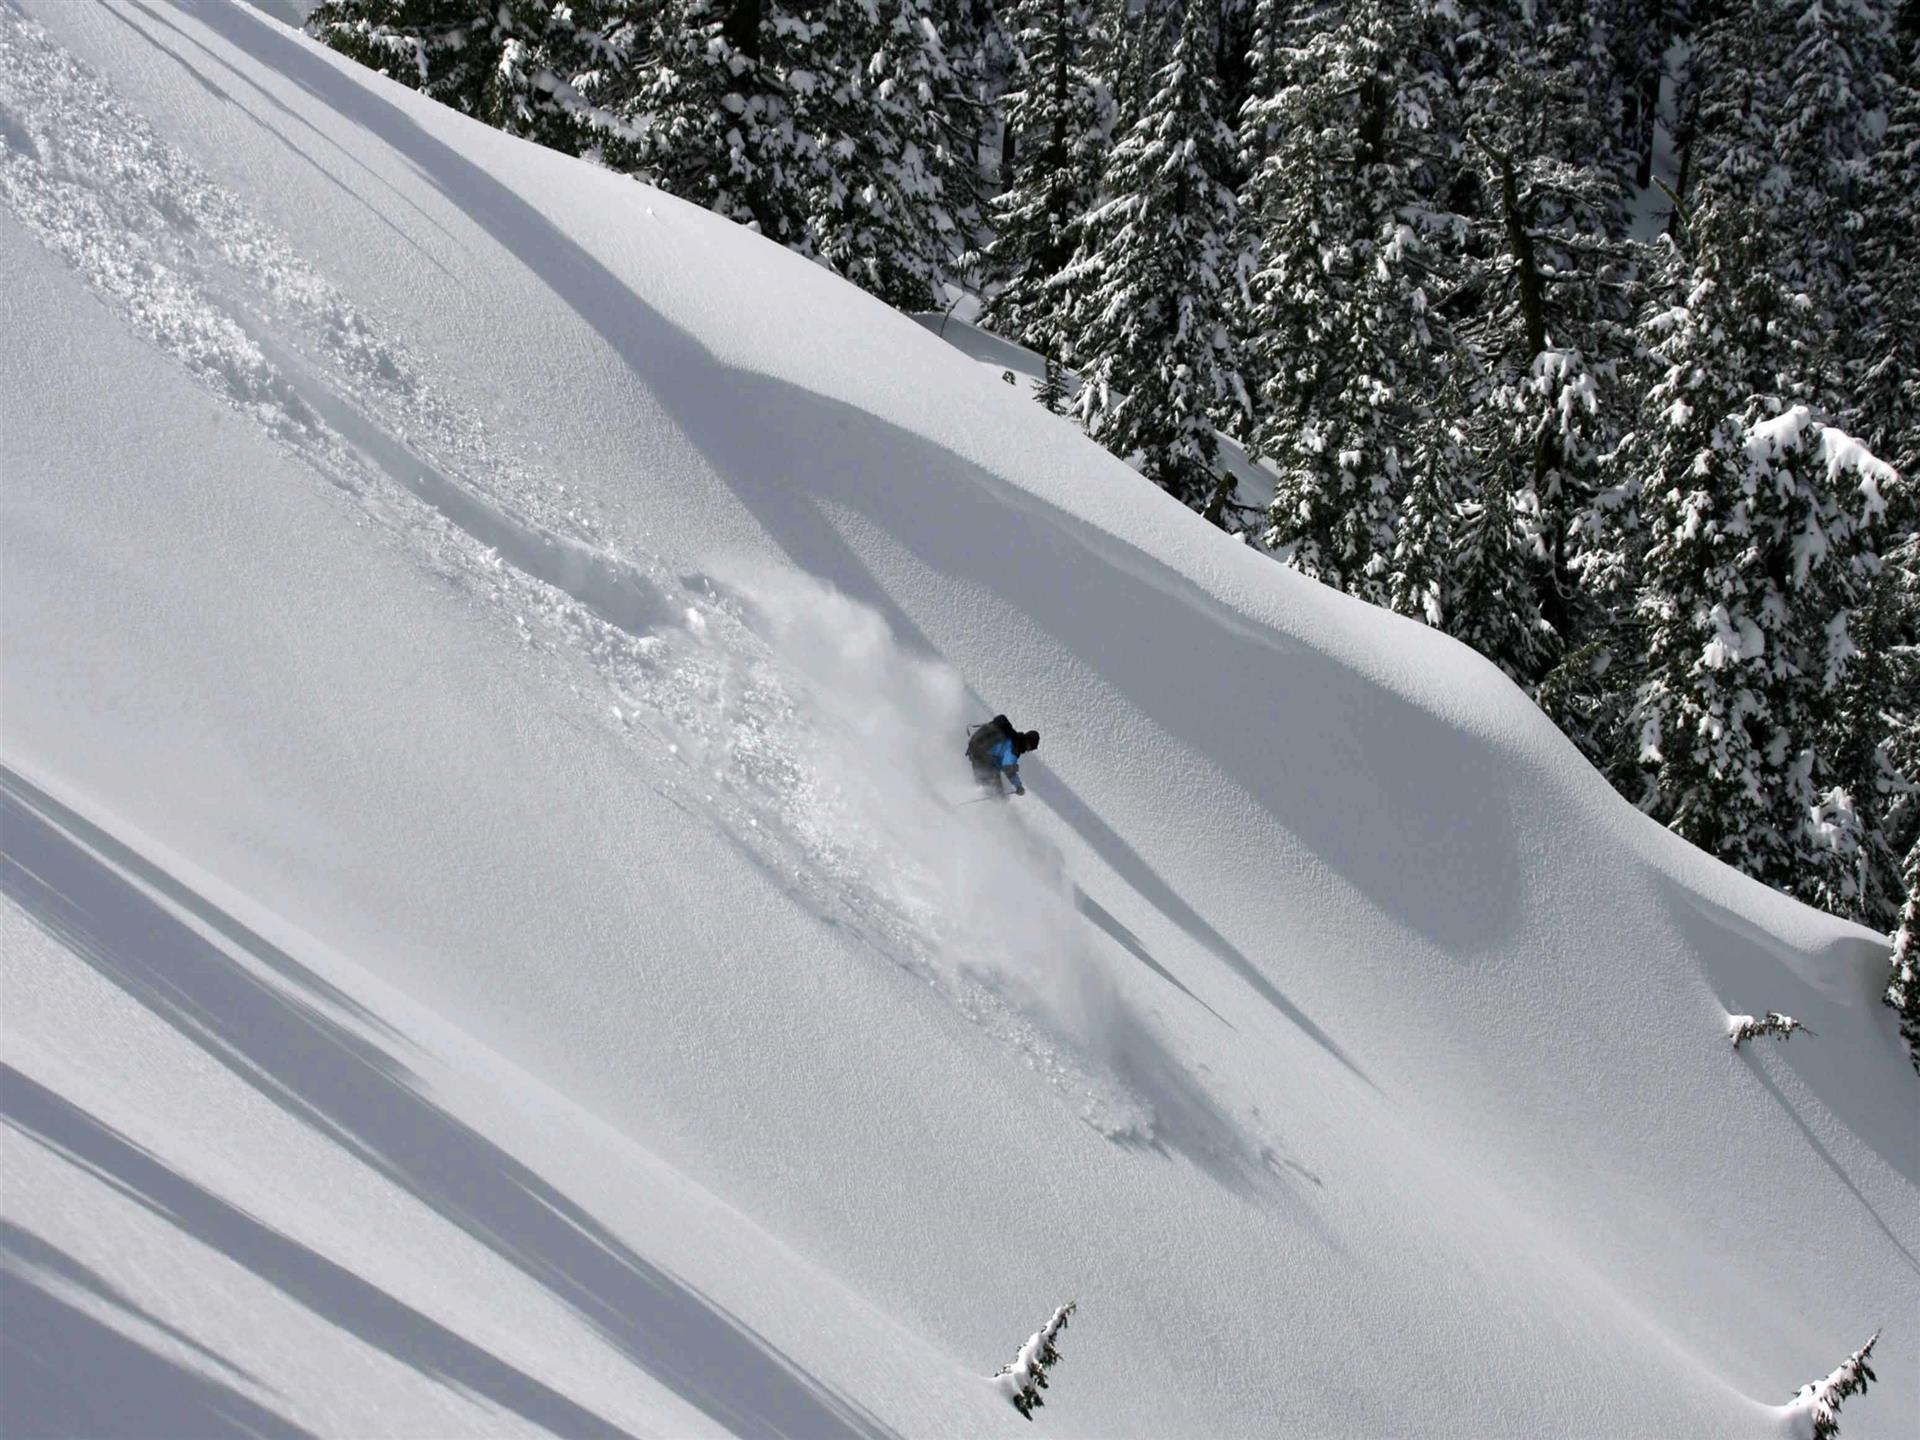 skier going down mountain